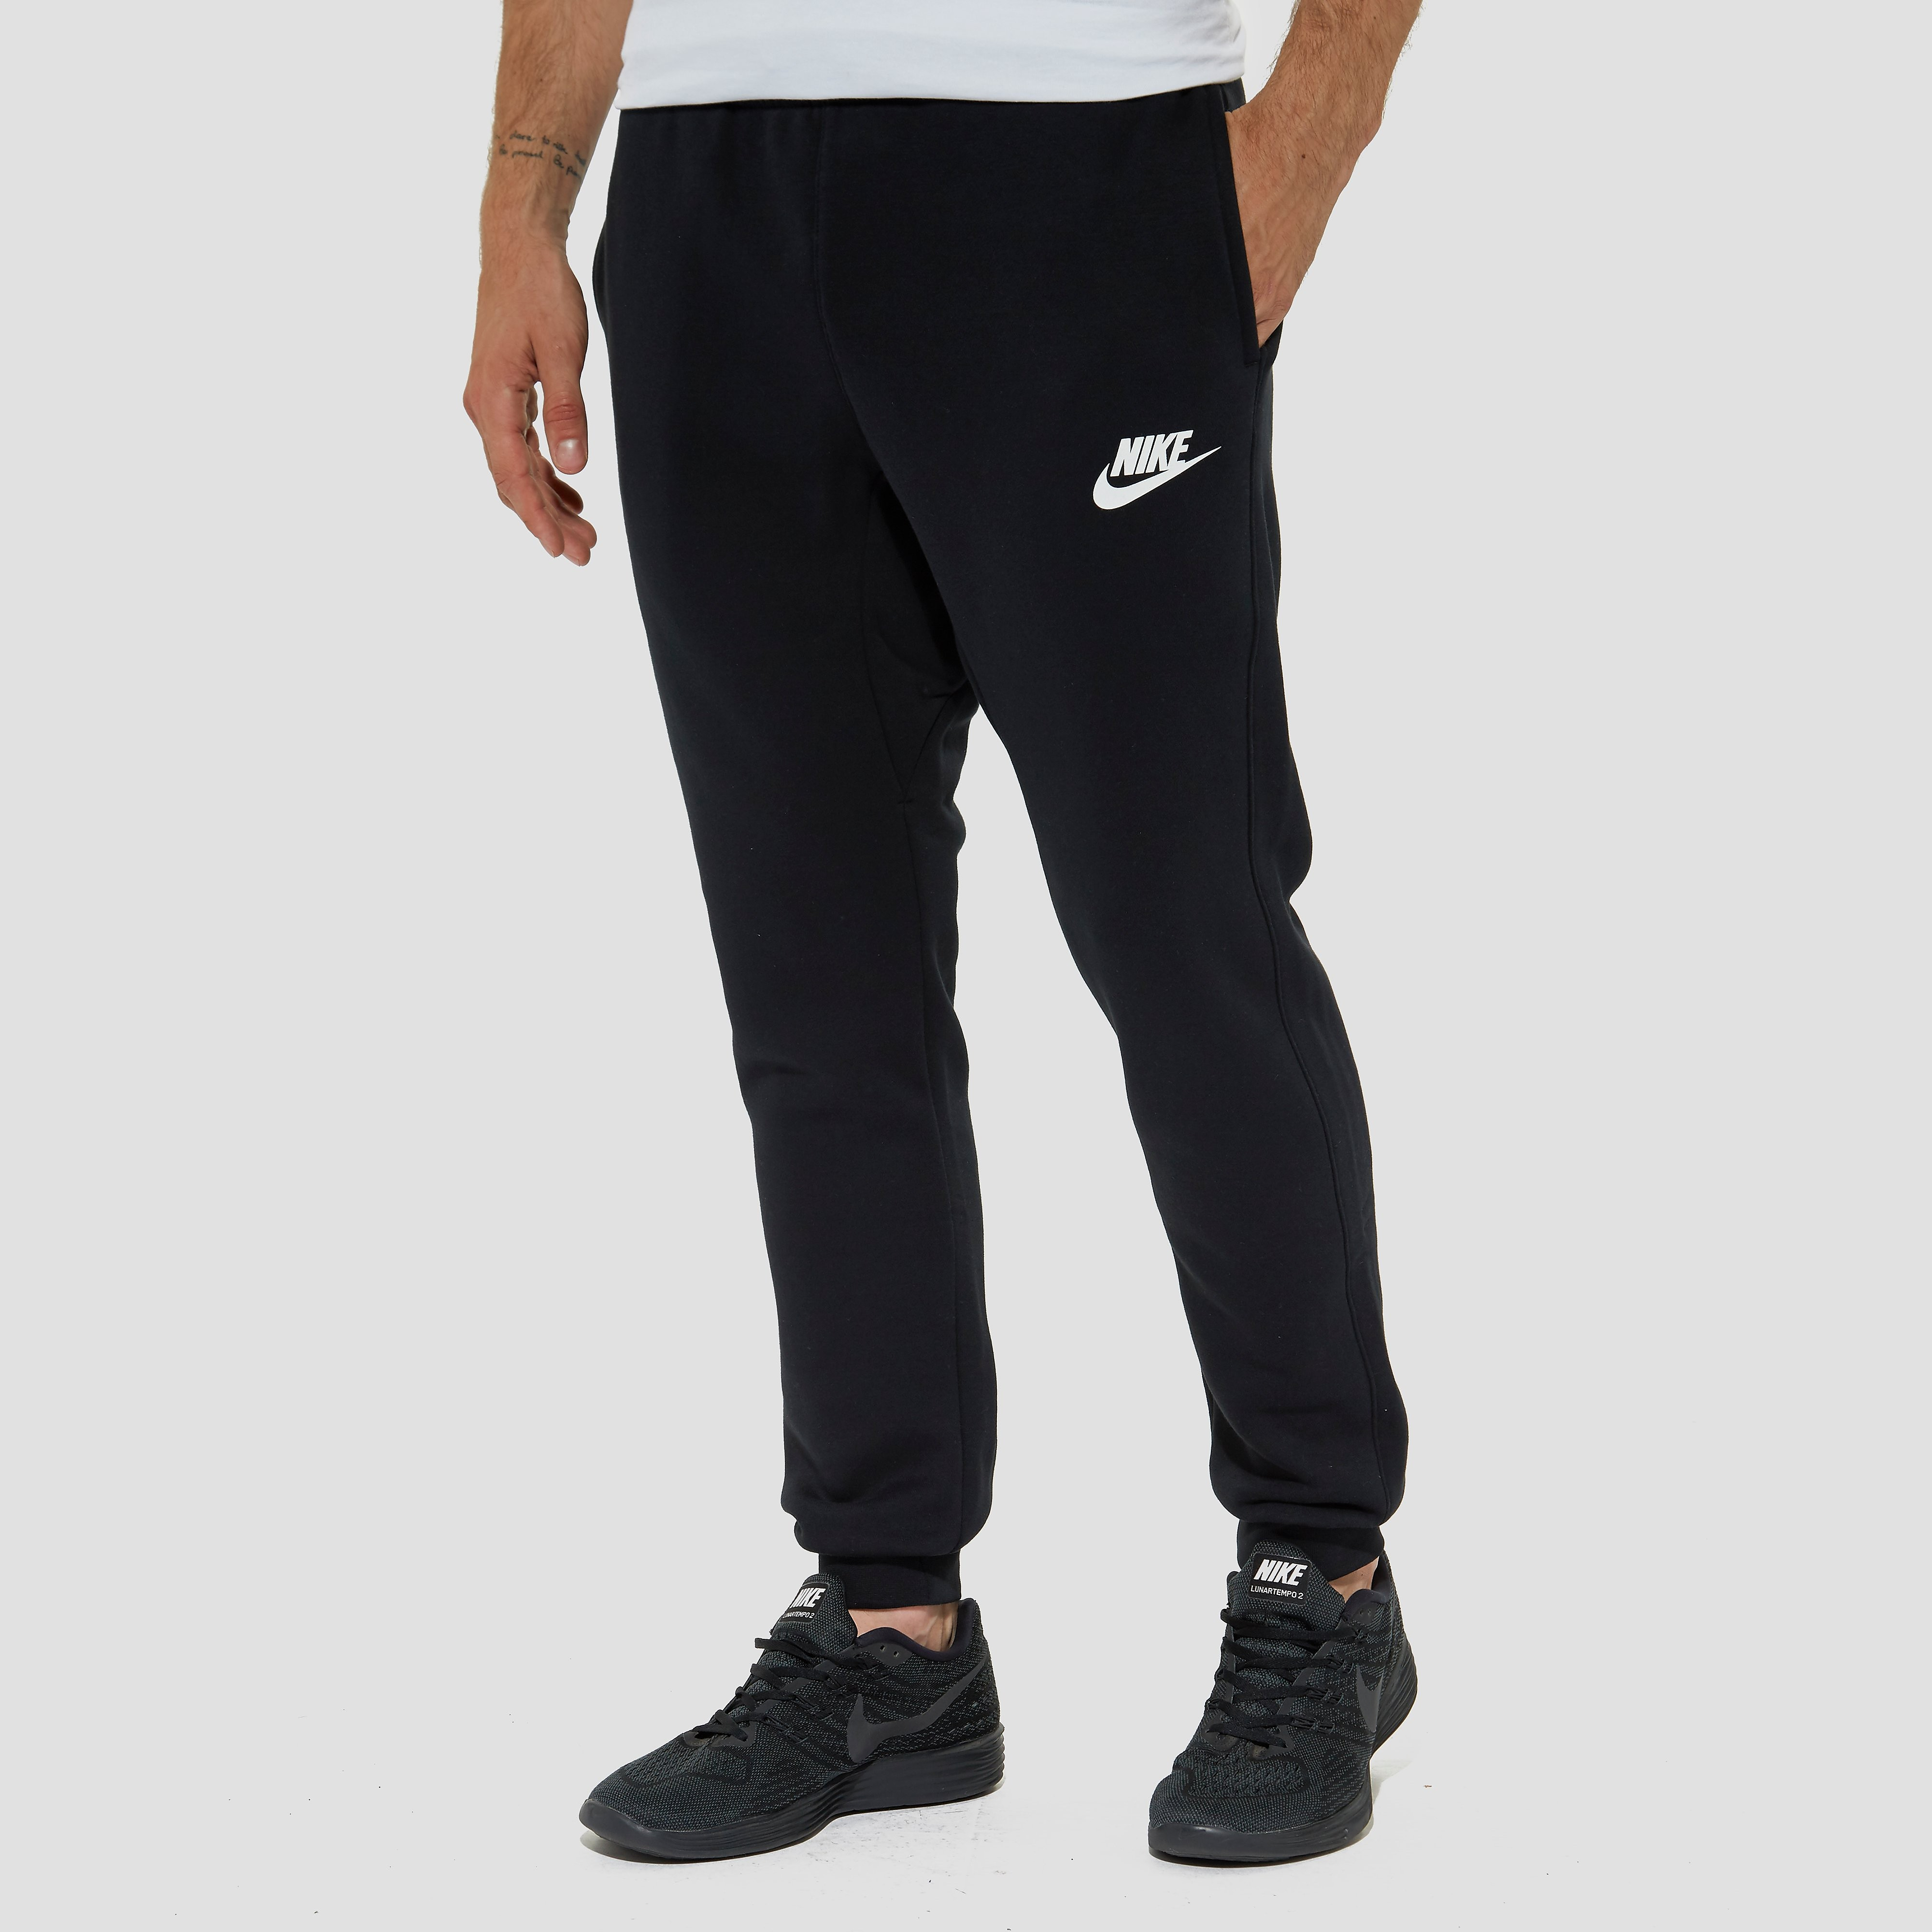 NIKE FLEECE JOGGINGBROEK GX ZWART HEREN